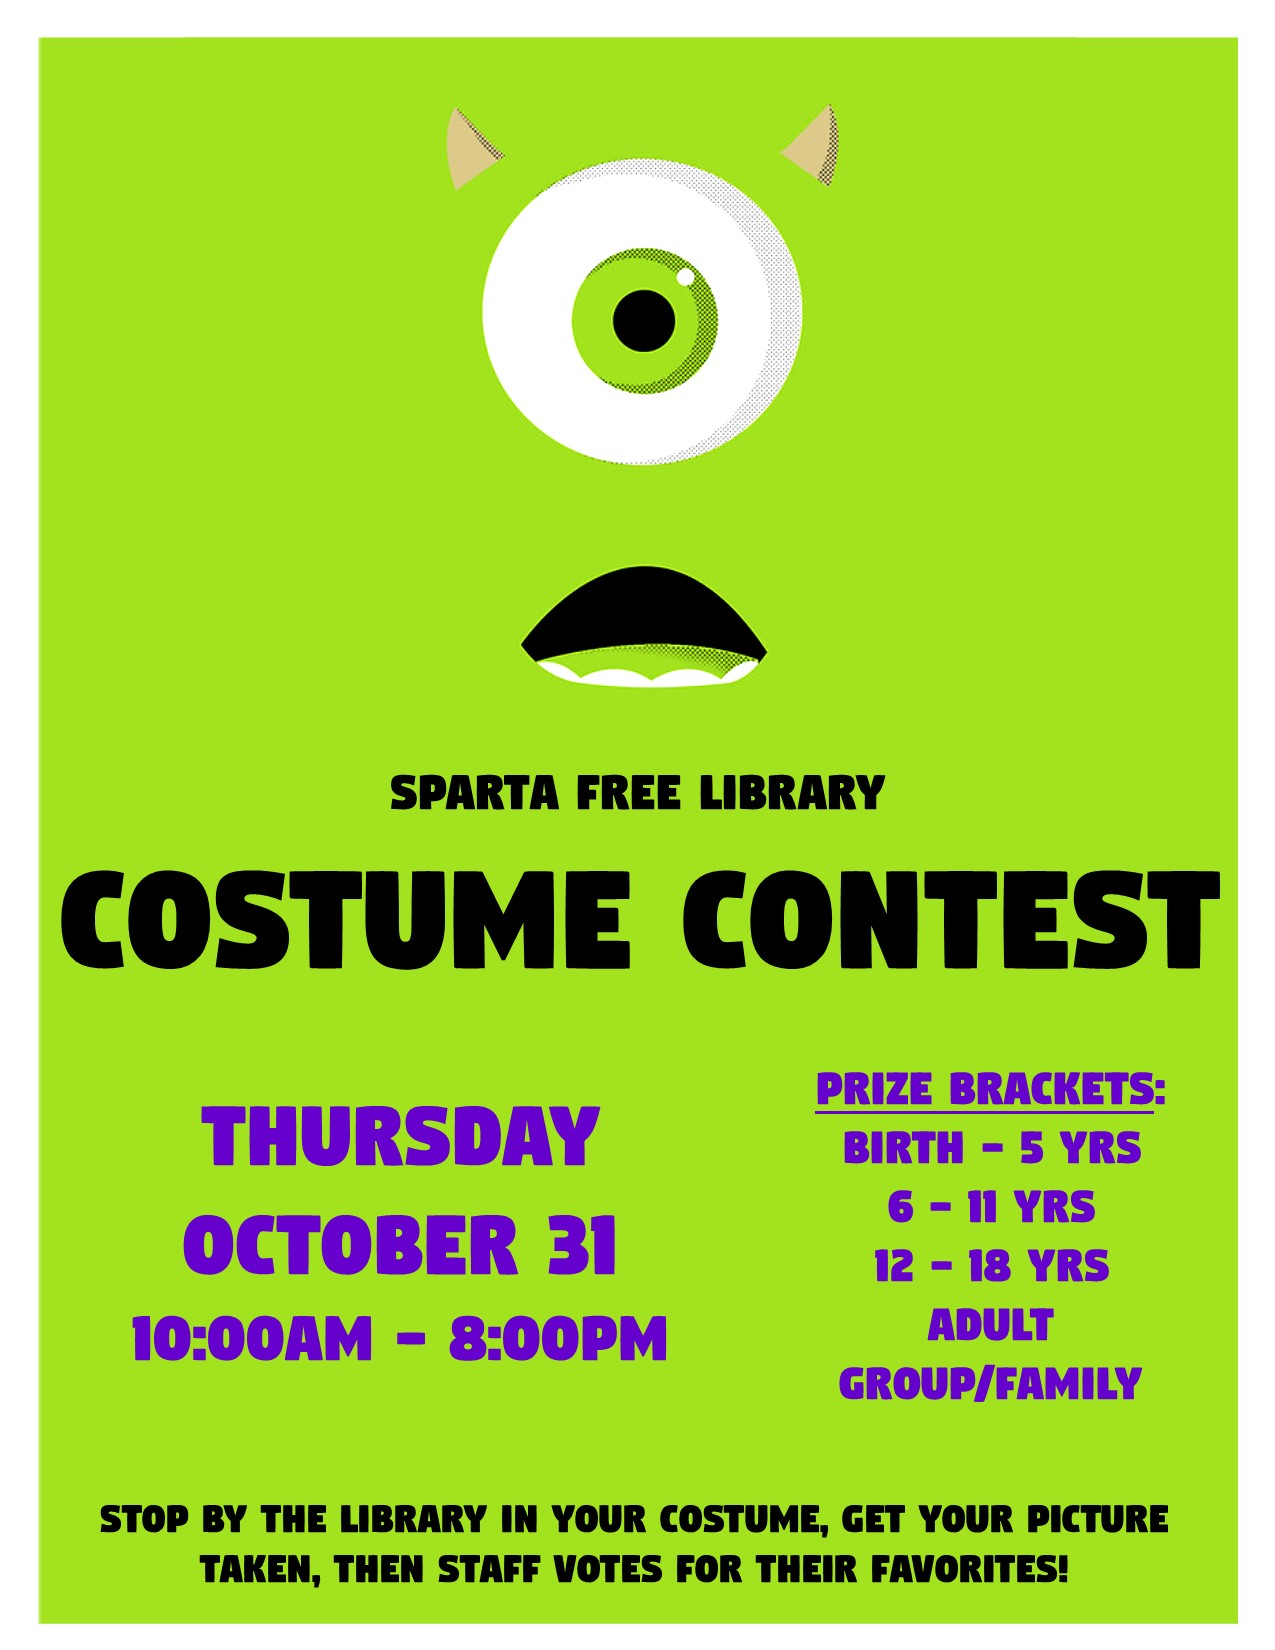 Costume Contest @ Sparta Free Library